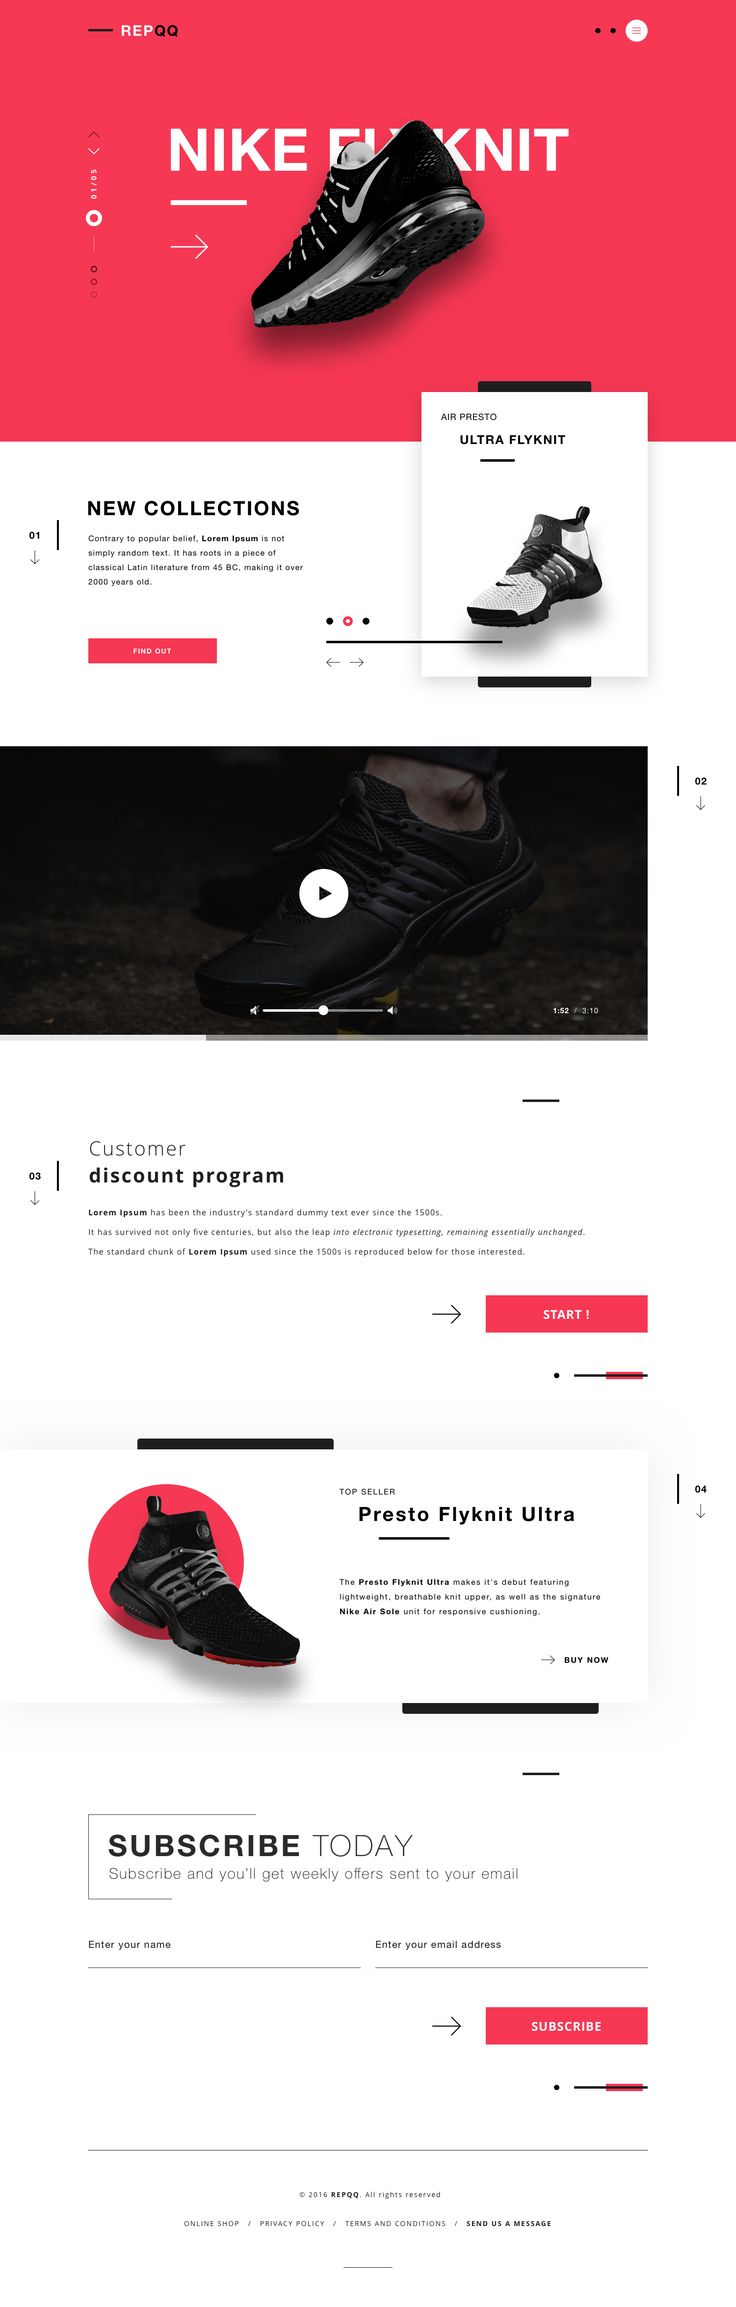 Dribbble - website-landing-page-nike-shoes-online-shop-design-dribbble-full.png by Robert Berki